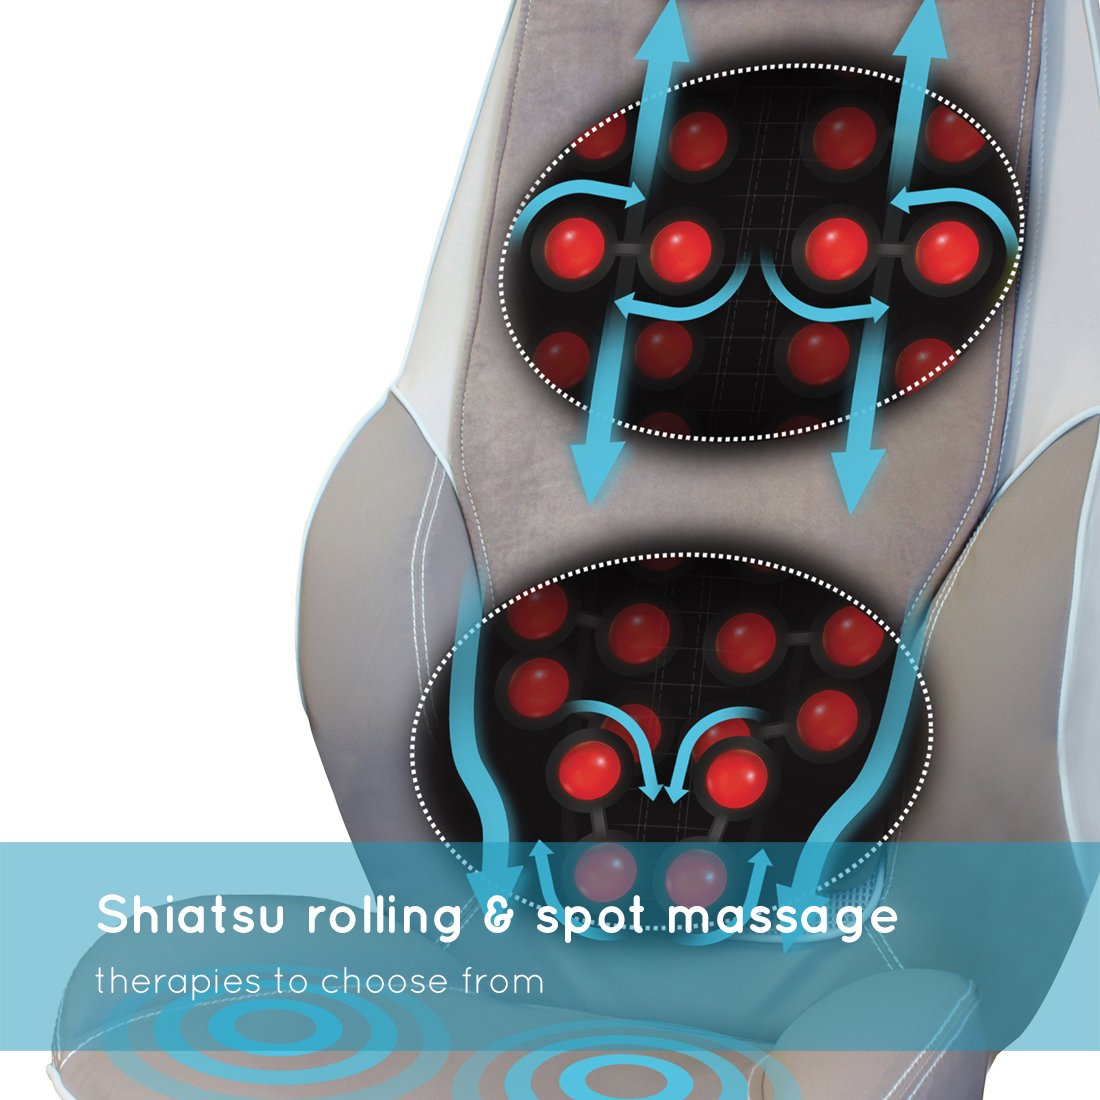 Massageumfang der HoMedics Max Shiatsu Massagematte